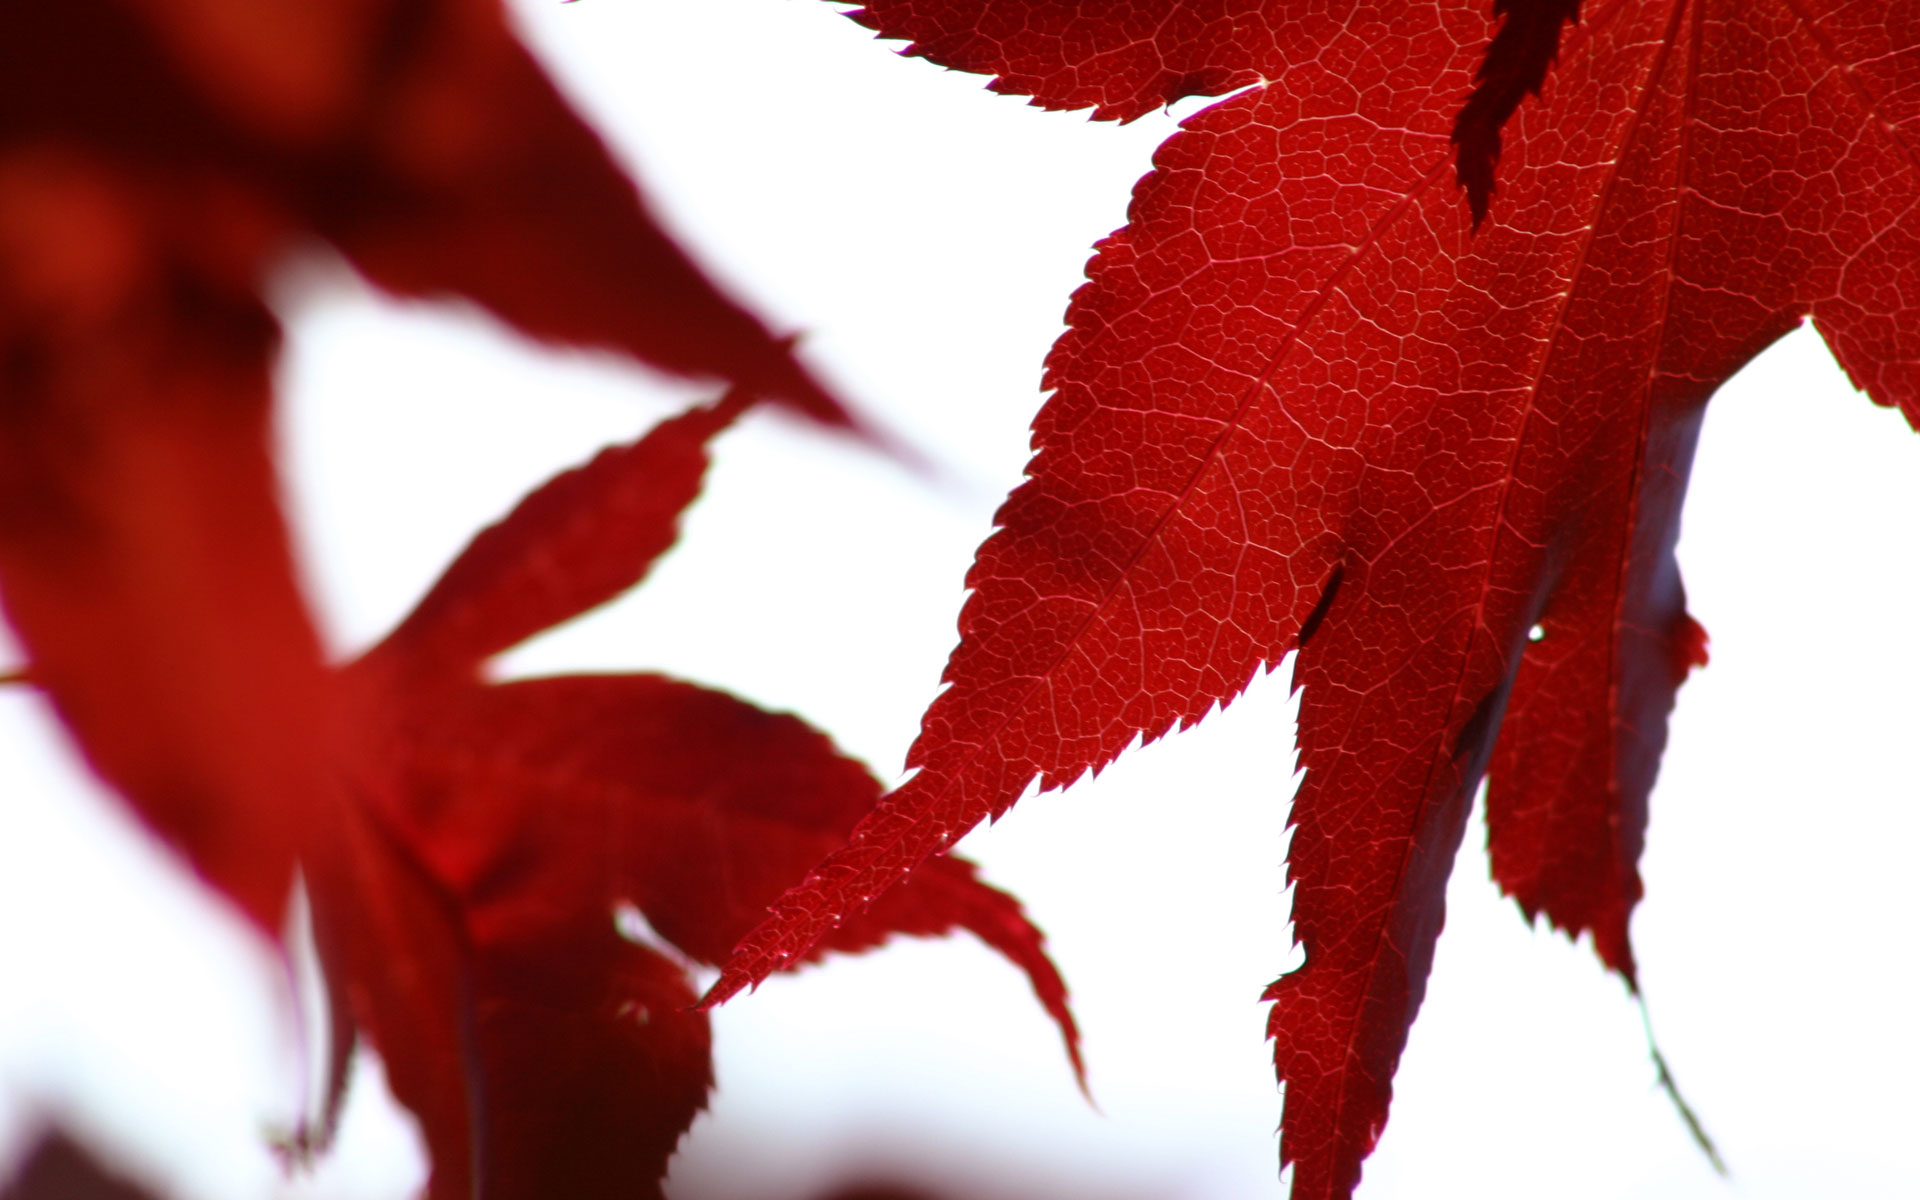 red leafs 27652